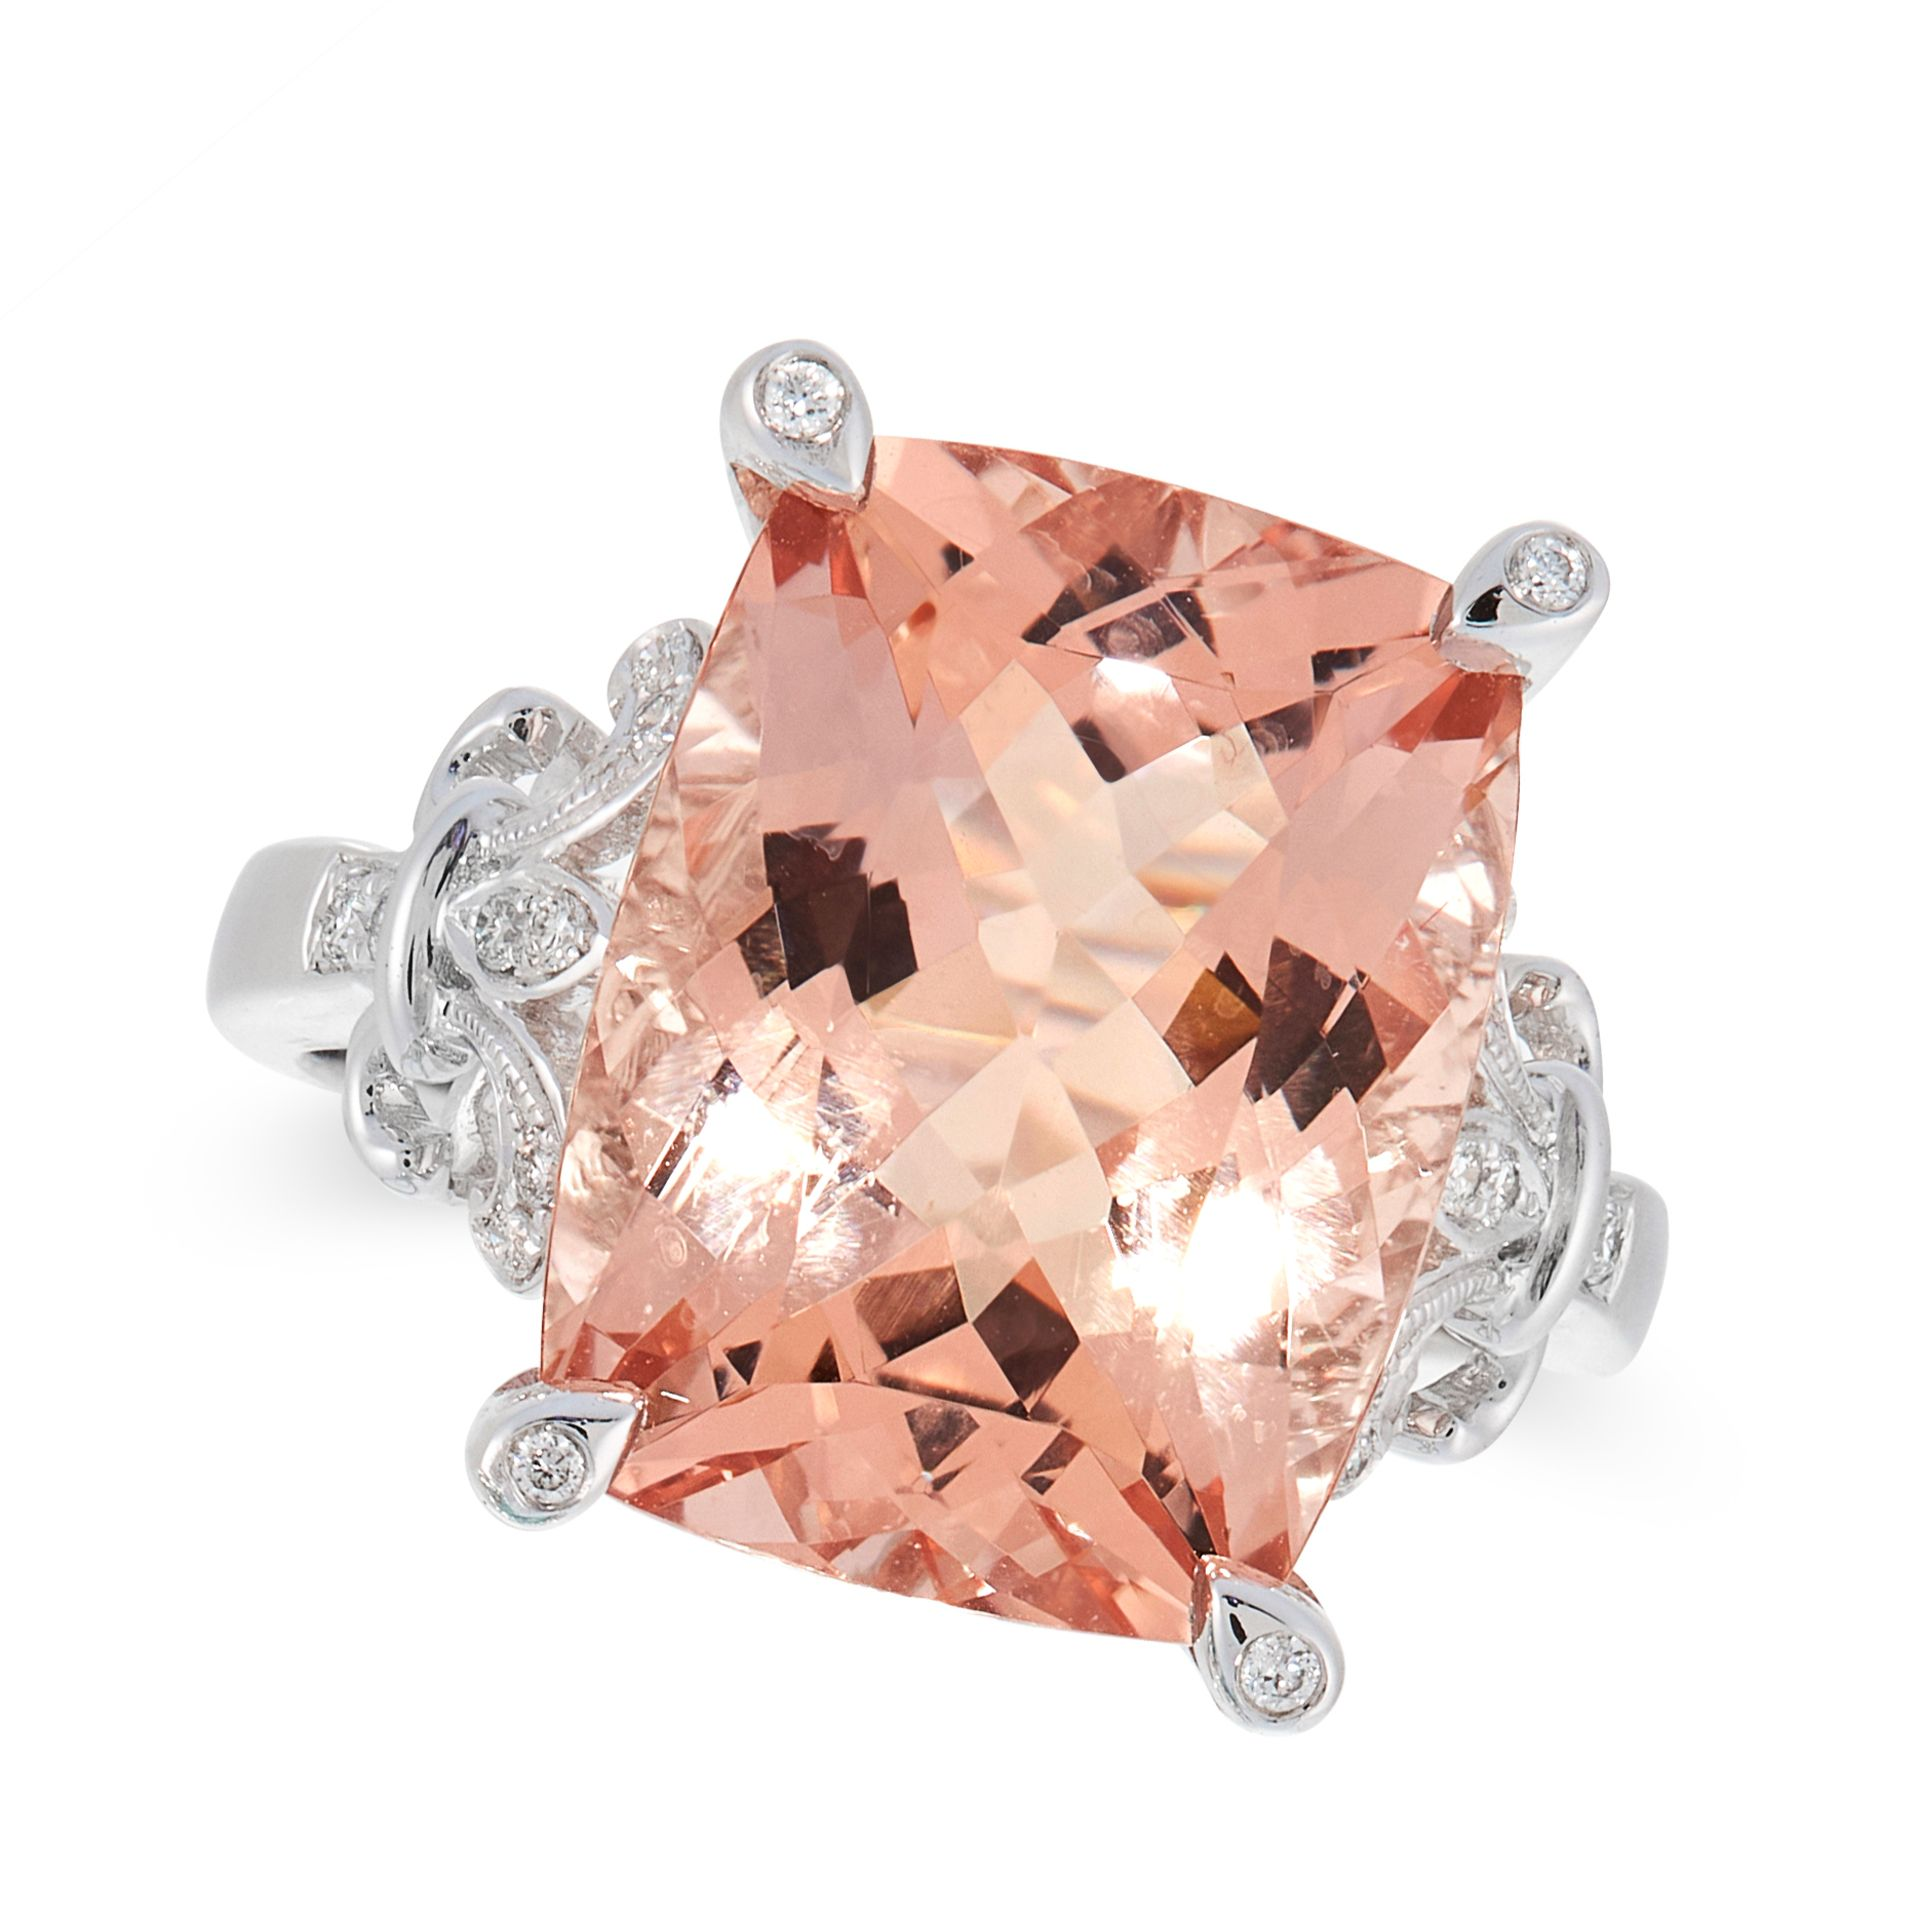 A MORGANITE AND DIAMOND DRESS RING in 18ct white gold, set with a cushion cut morganite of 9.40